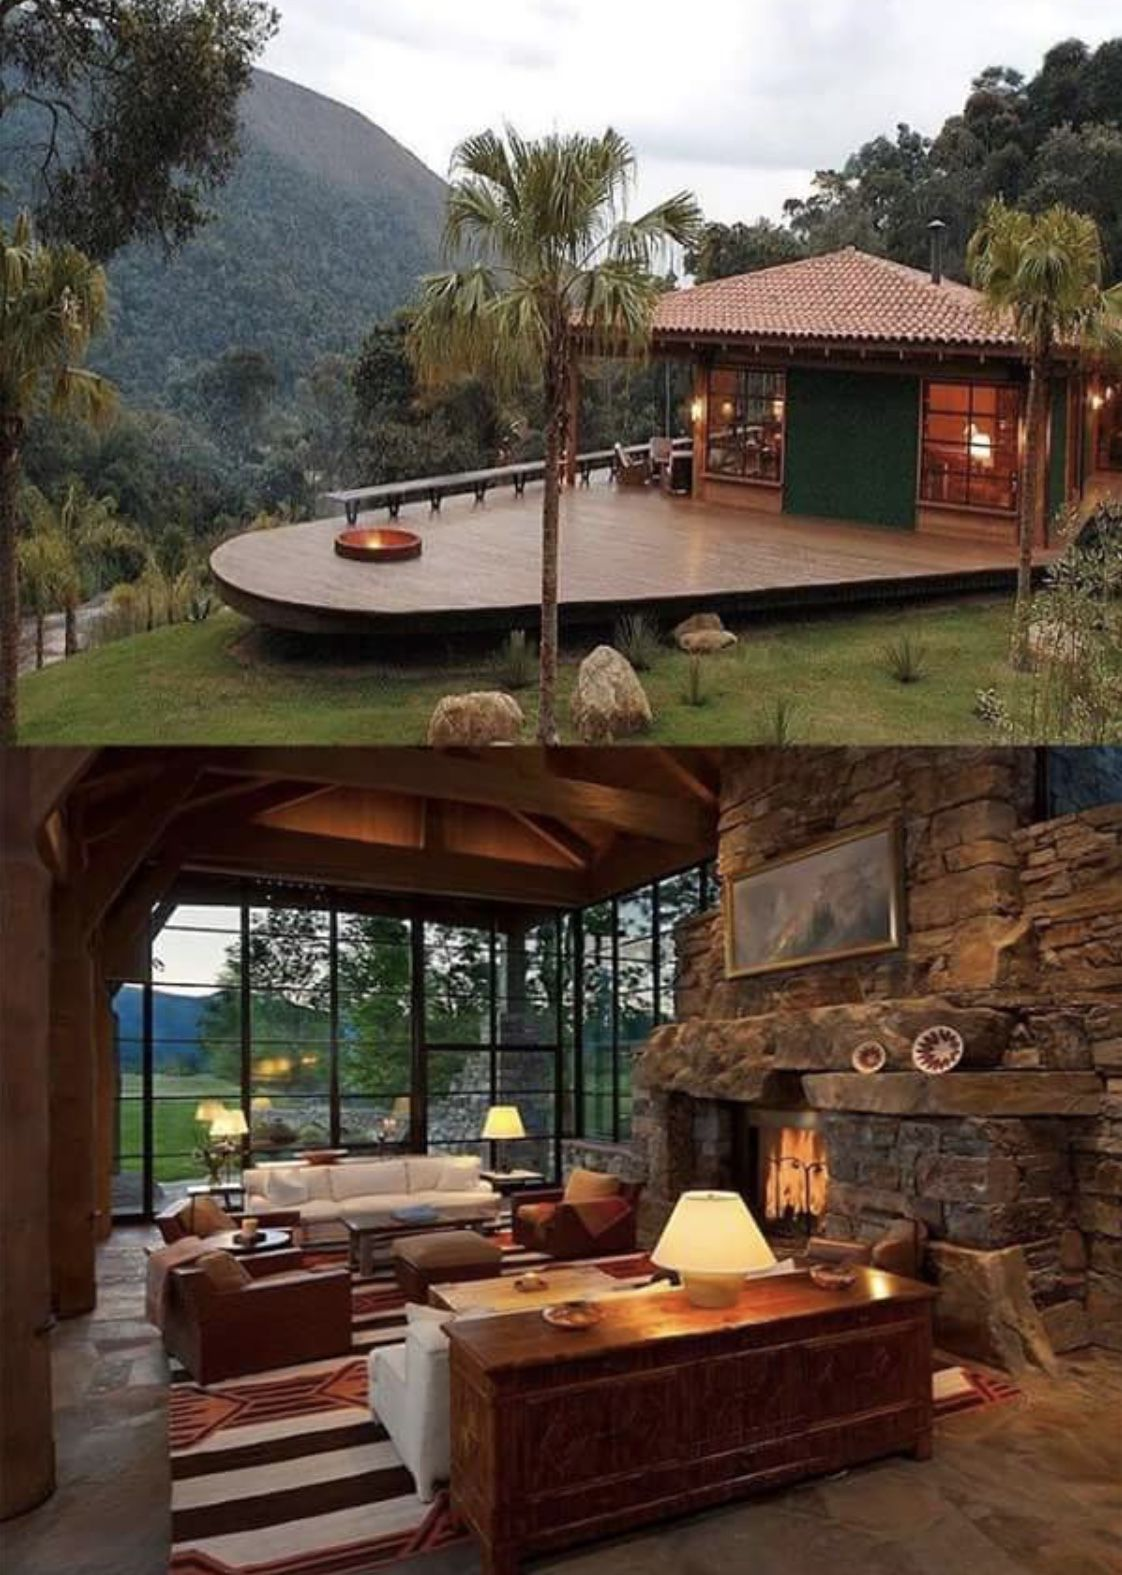 Cabanas en las montanas also best log cabin homes plans design ideas exterior  rh pinterest